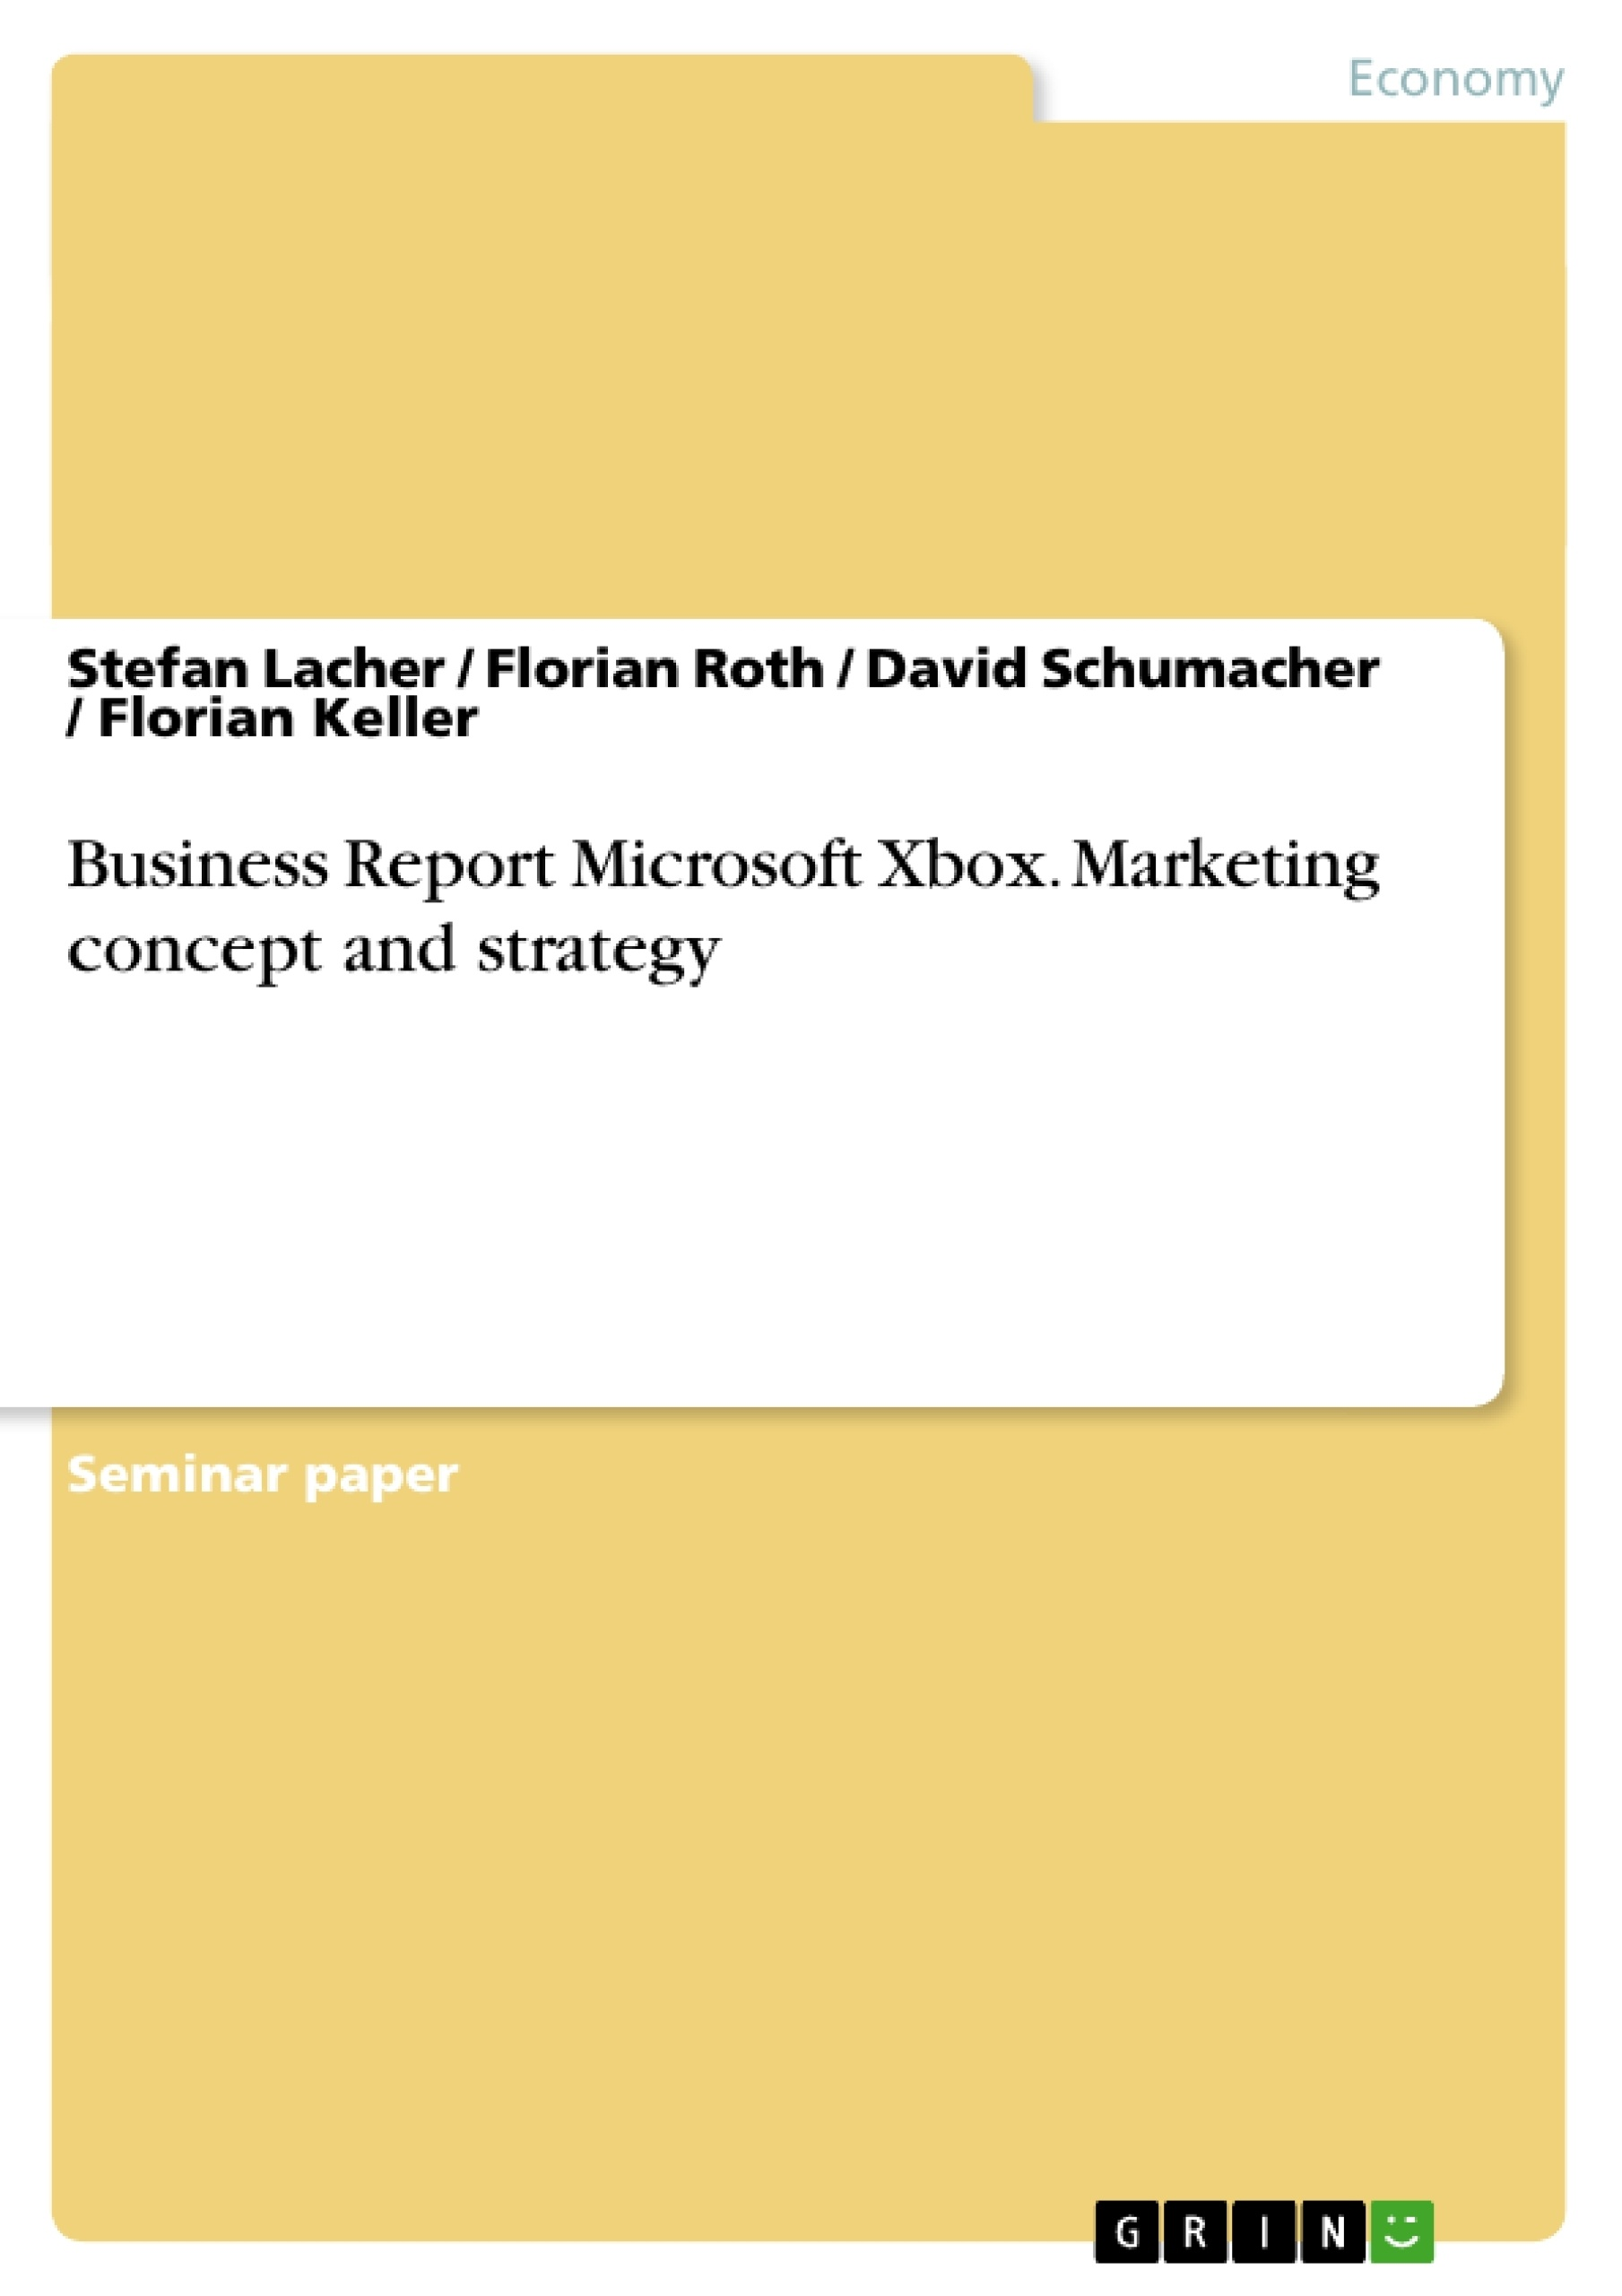 business report microsoft xbox marketing concept and strategy